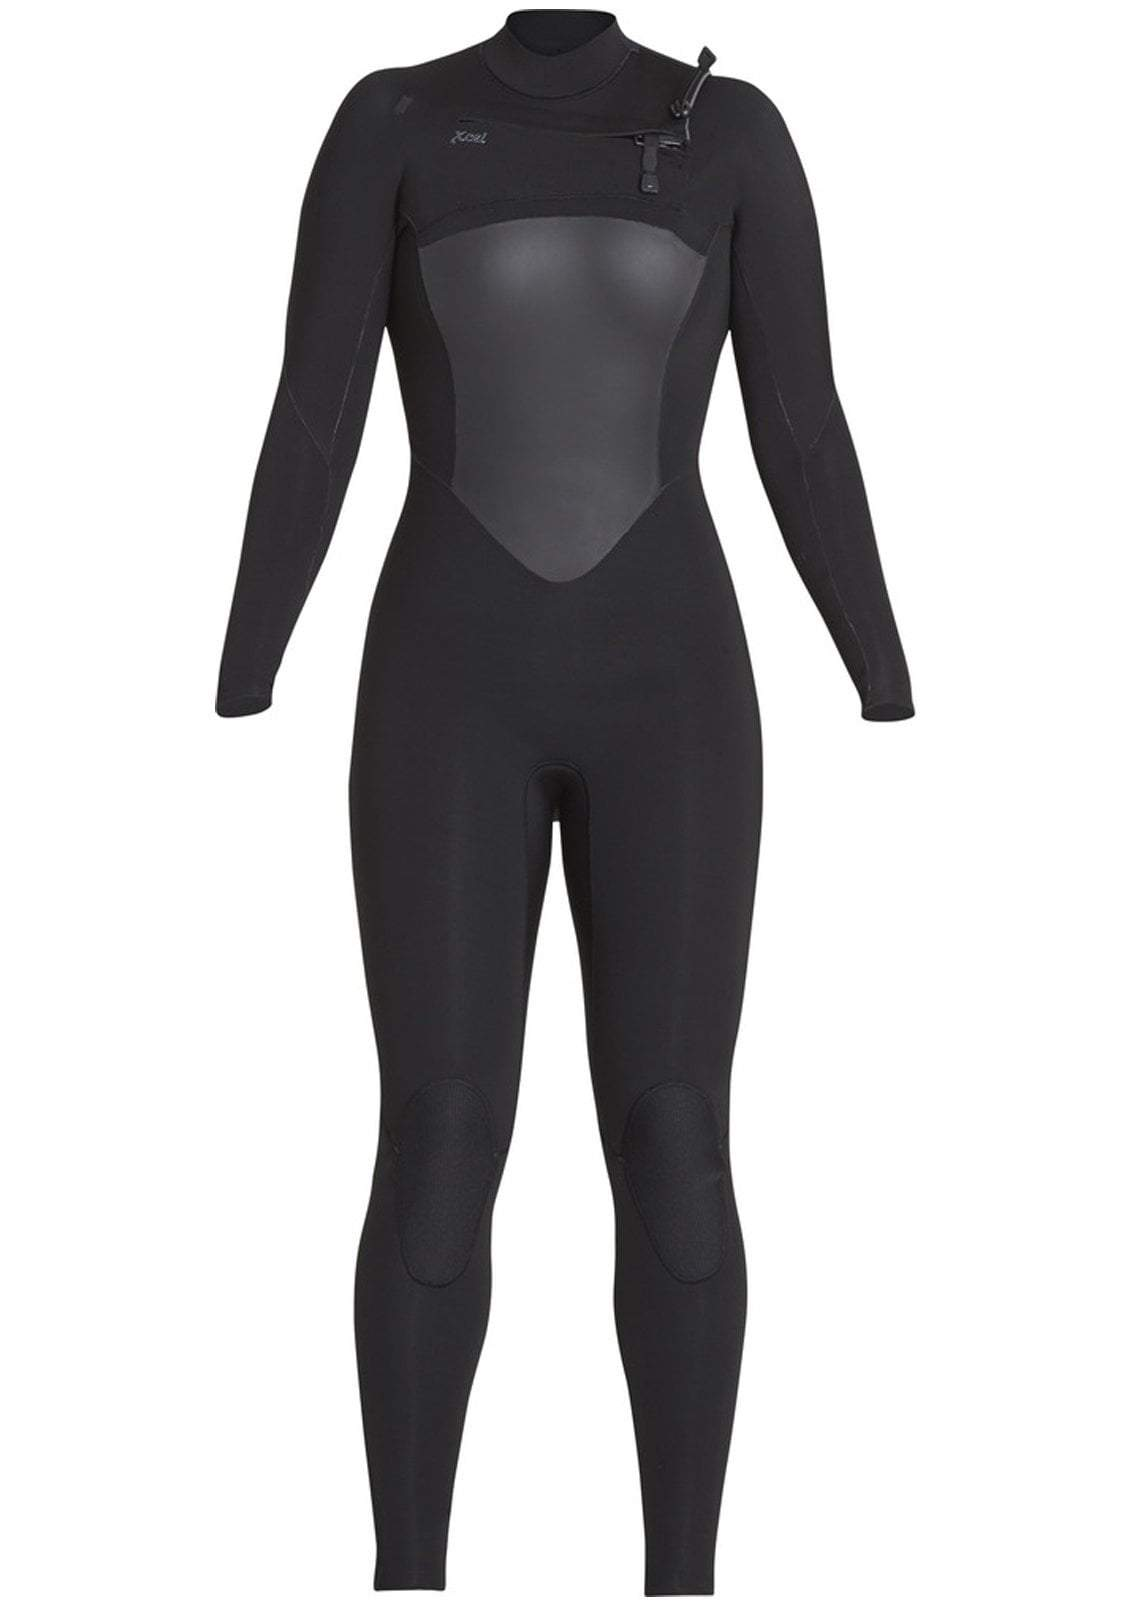 d760962004 Wetsuit Sale at Jackssurfboards.com – Jacks Surfboards